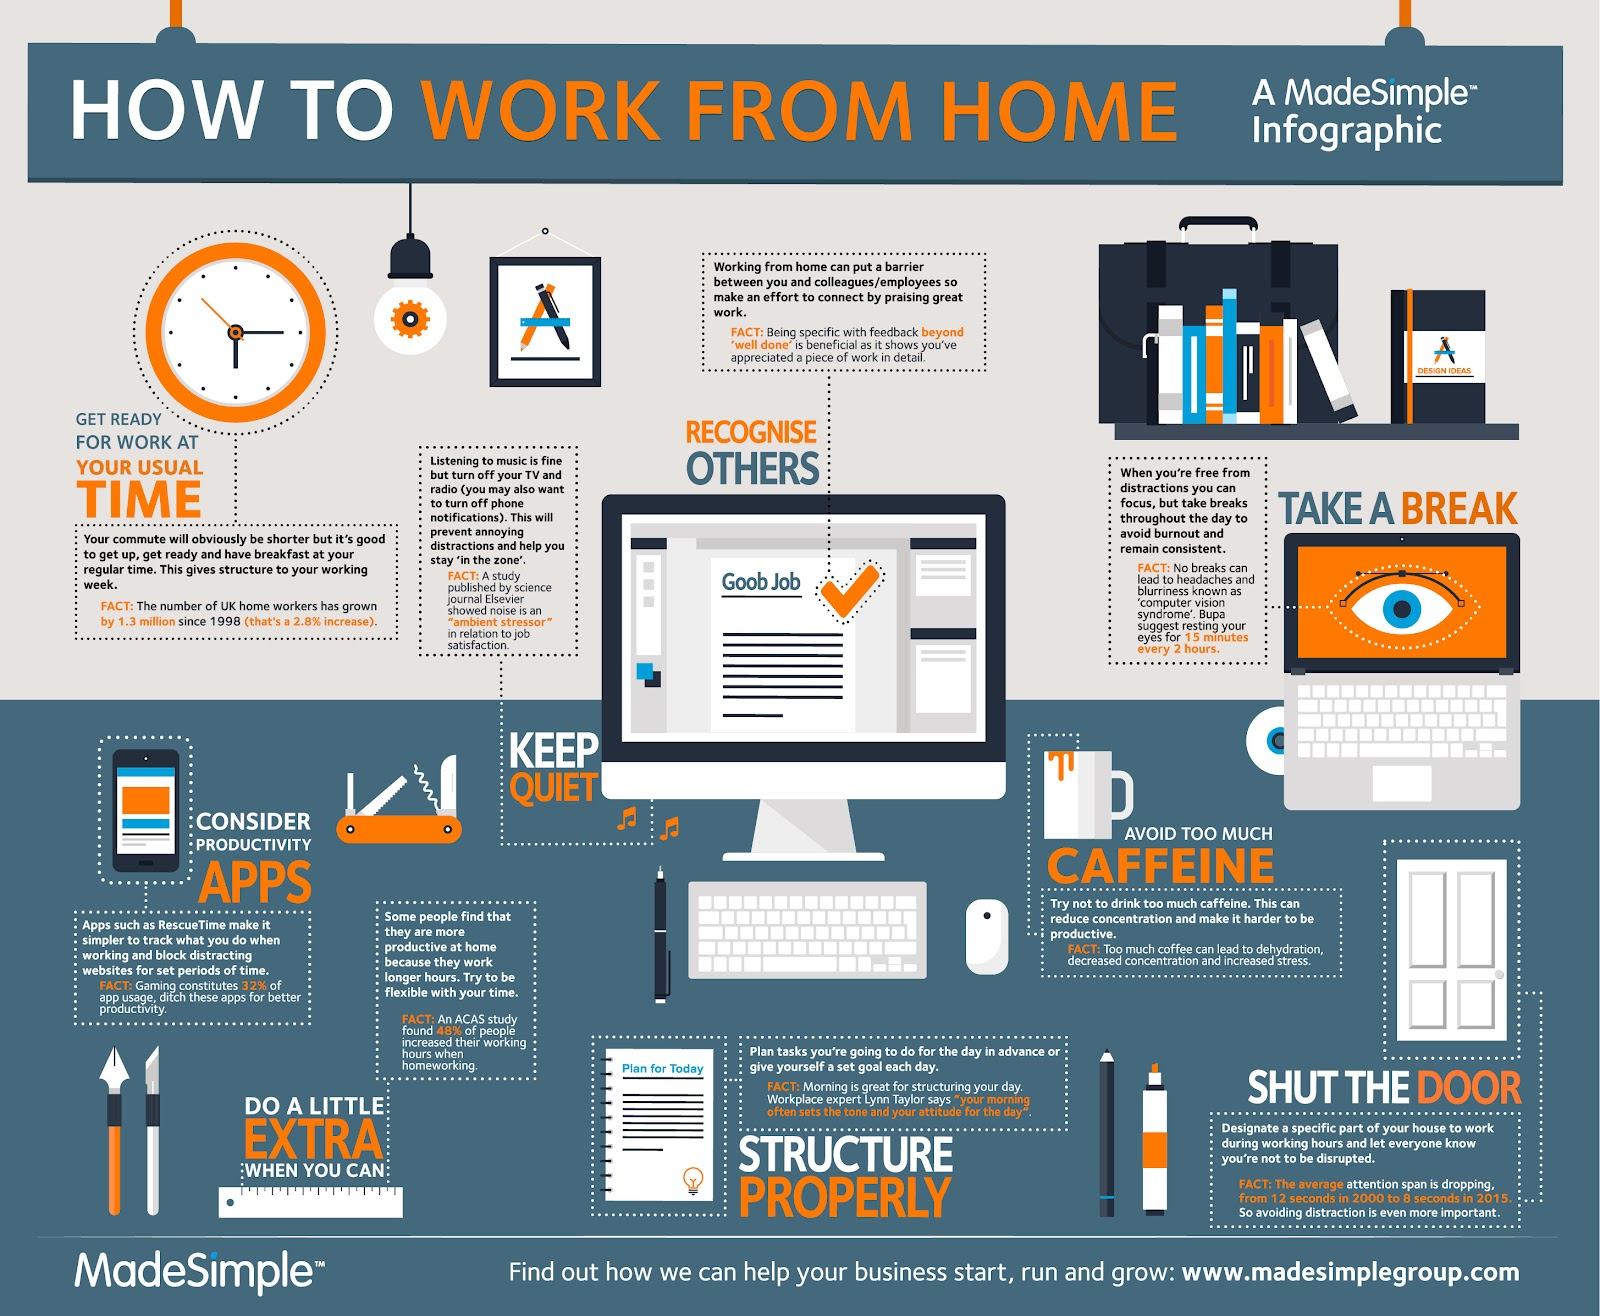 How to work from home as a sales team